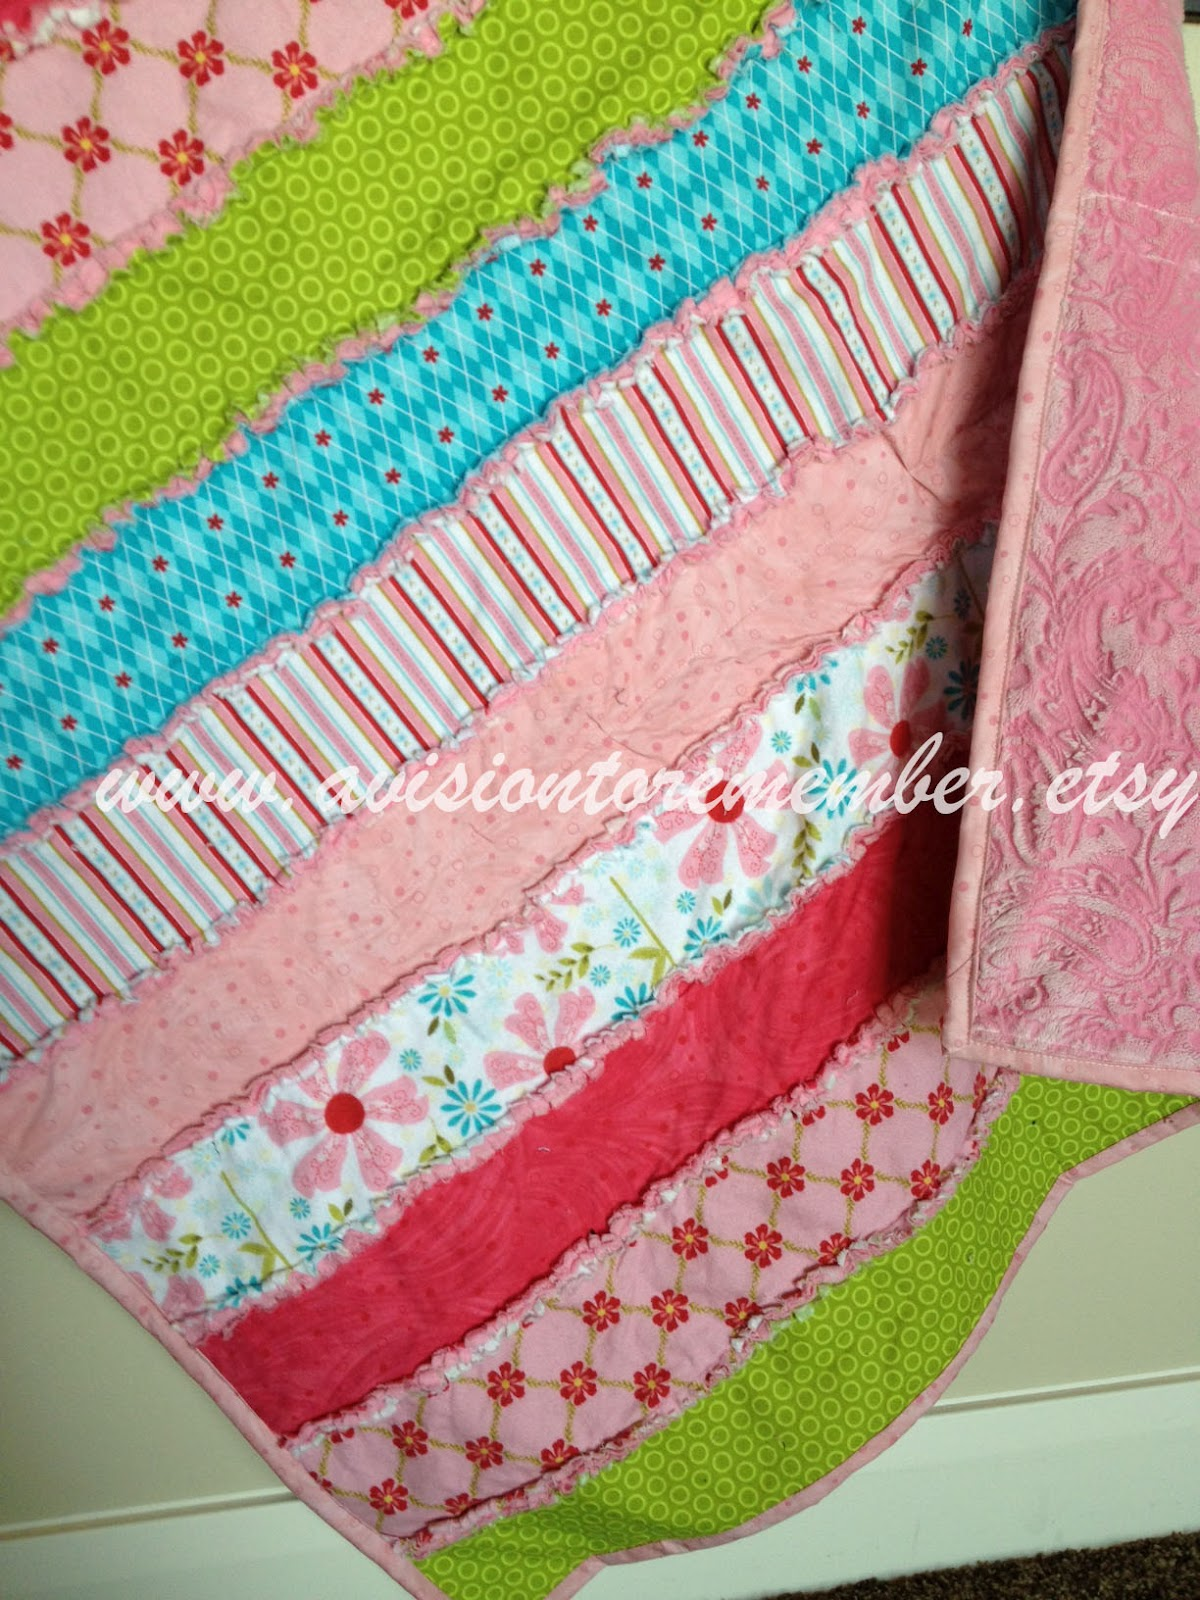 Strip Rag Quilt Free Pattern By A Vision To Remember A Vision To